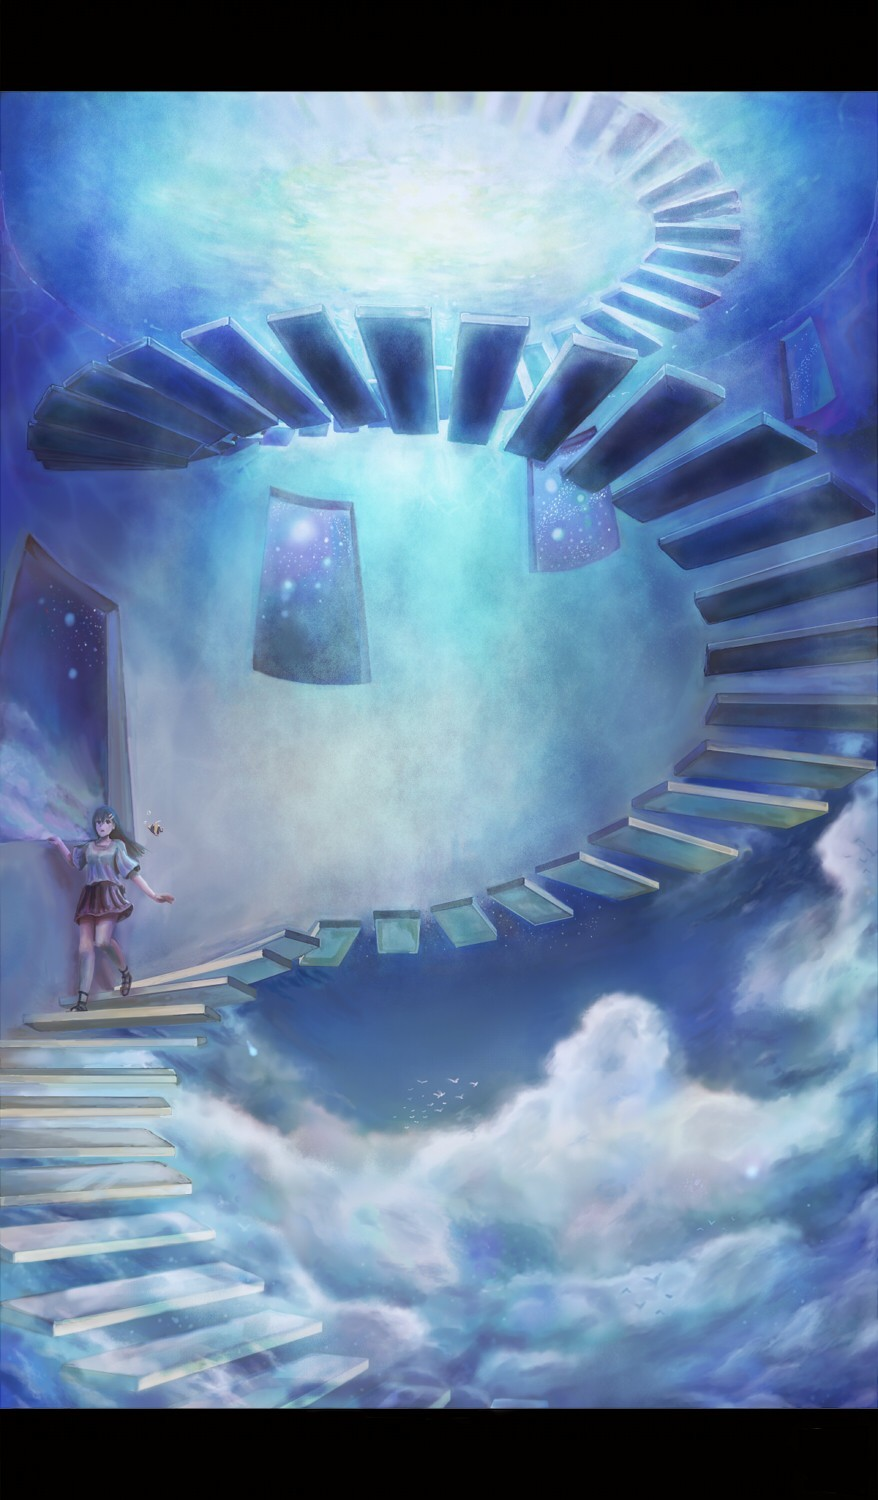 clouds stairways fantasy art